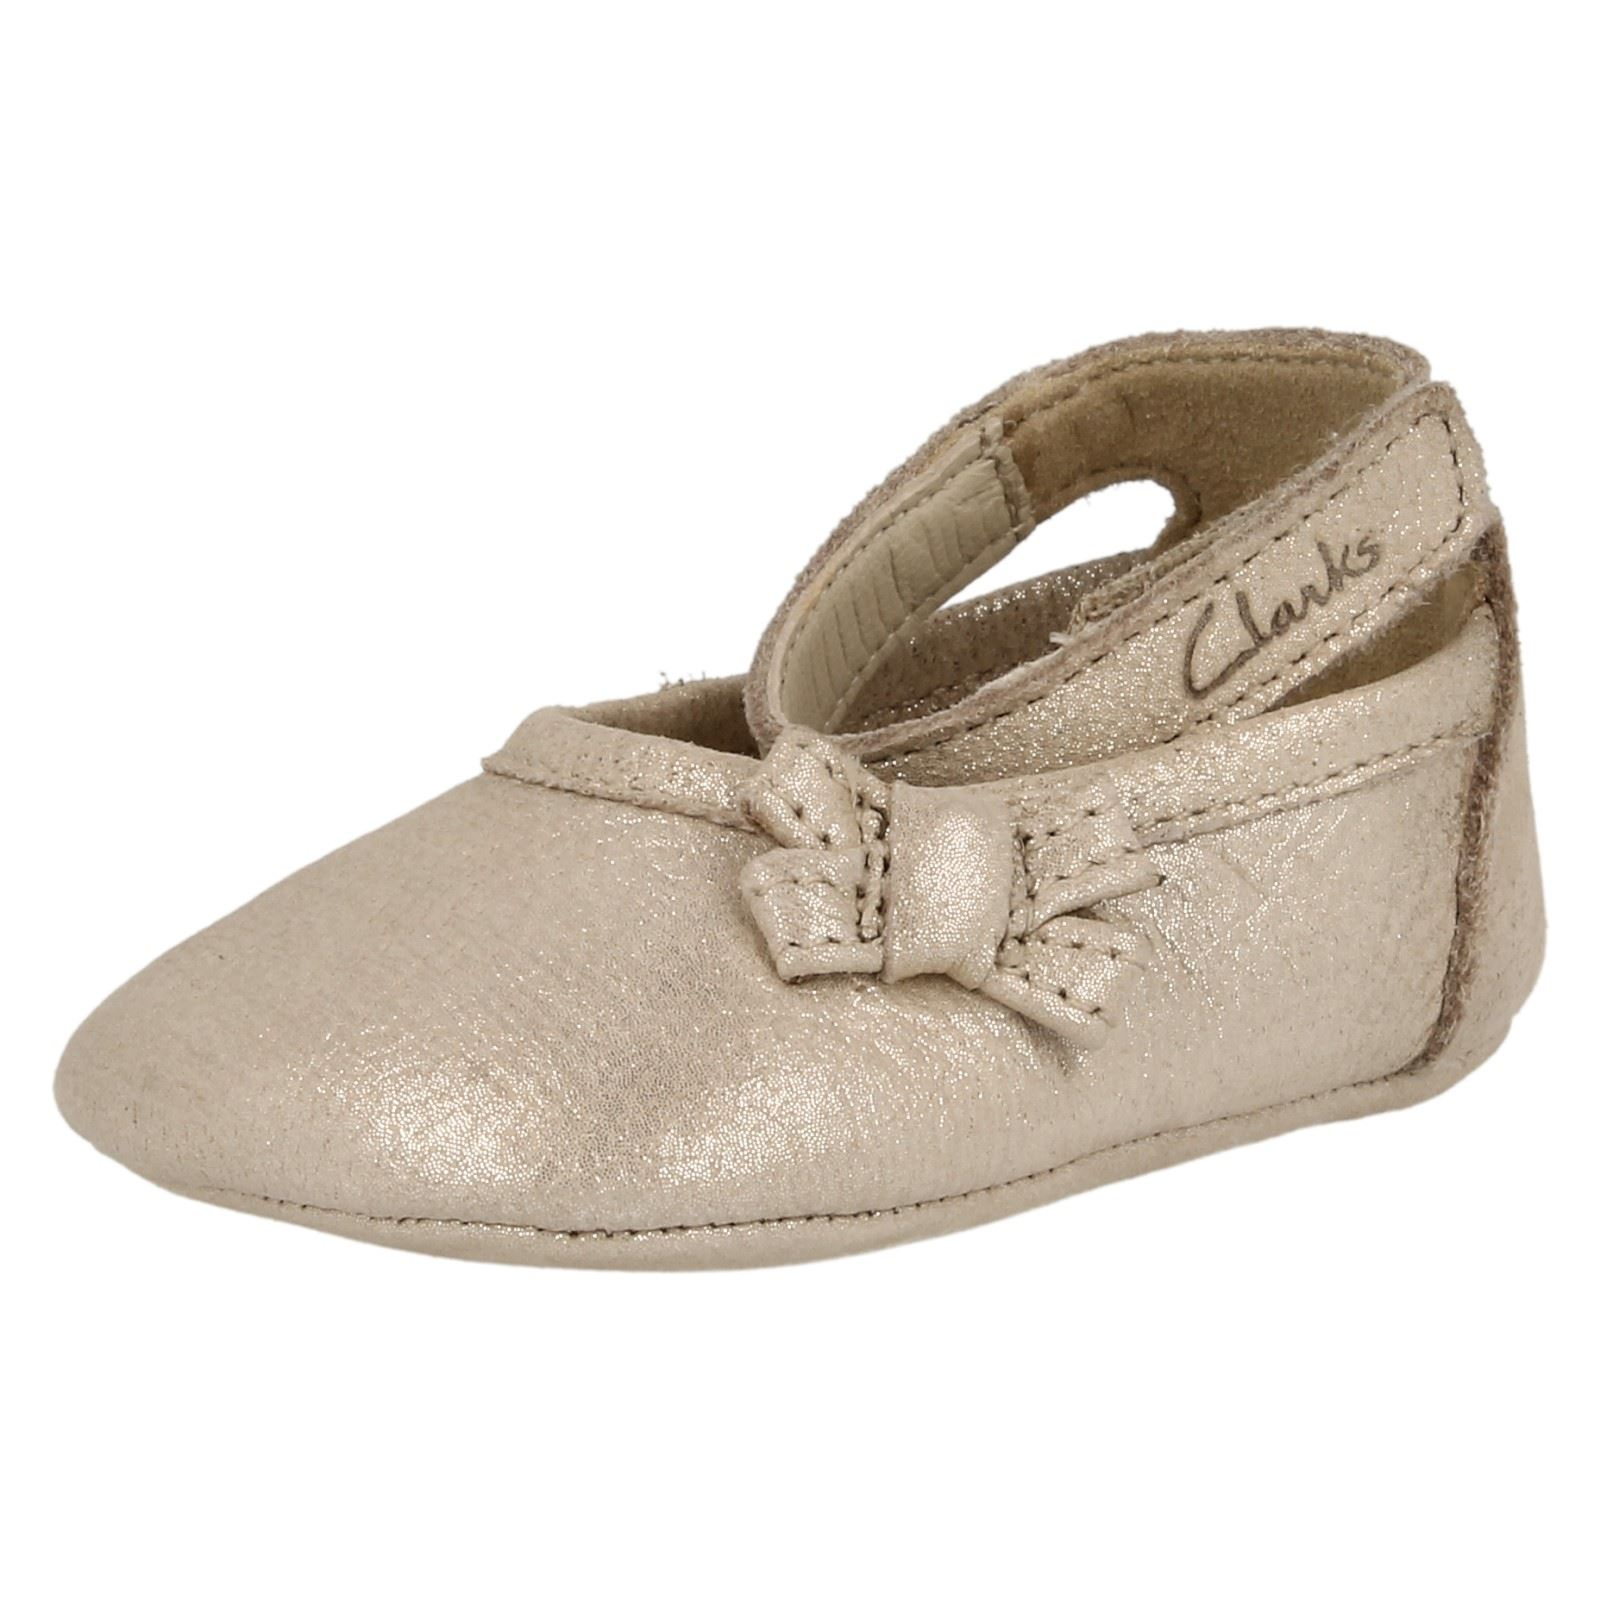 ecd8e4d439c6 Clarks Girls Soft Leather Pram Shoes With Strap - Baby Harper